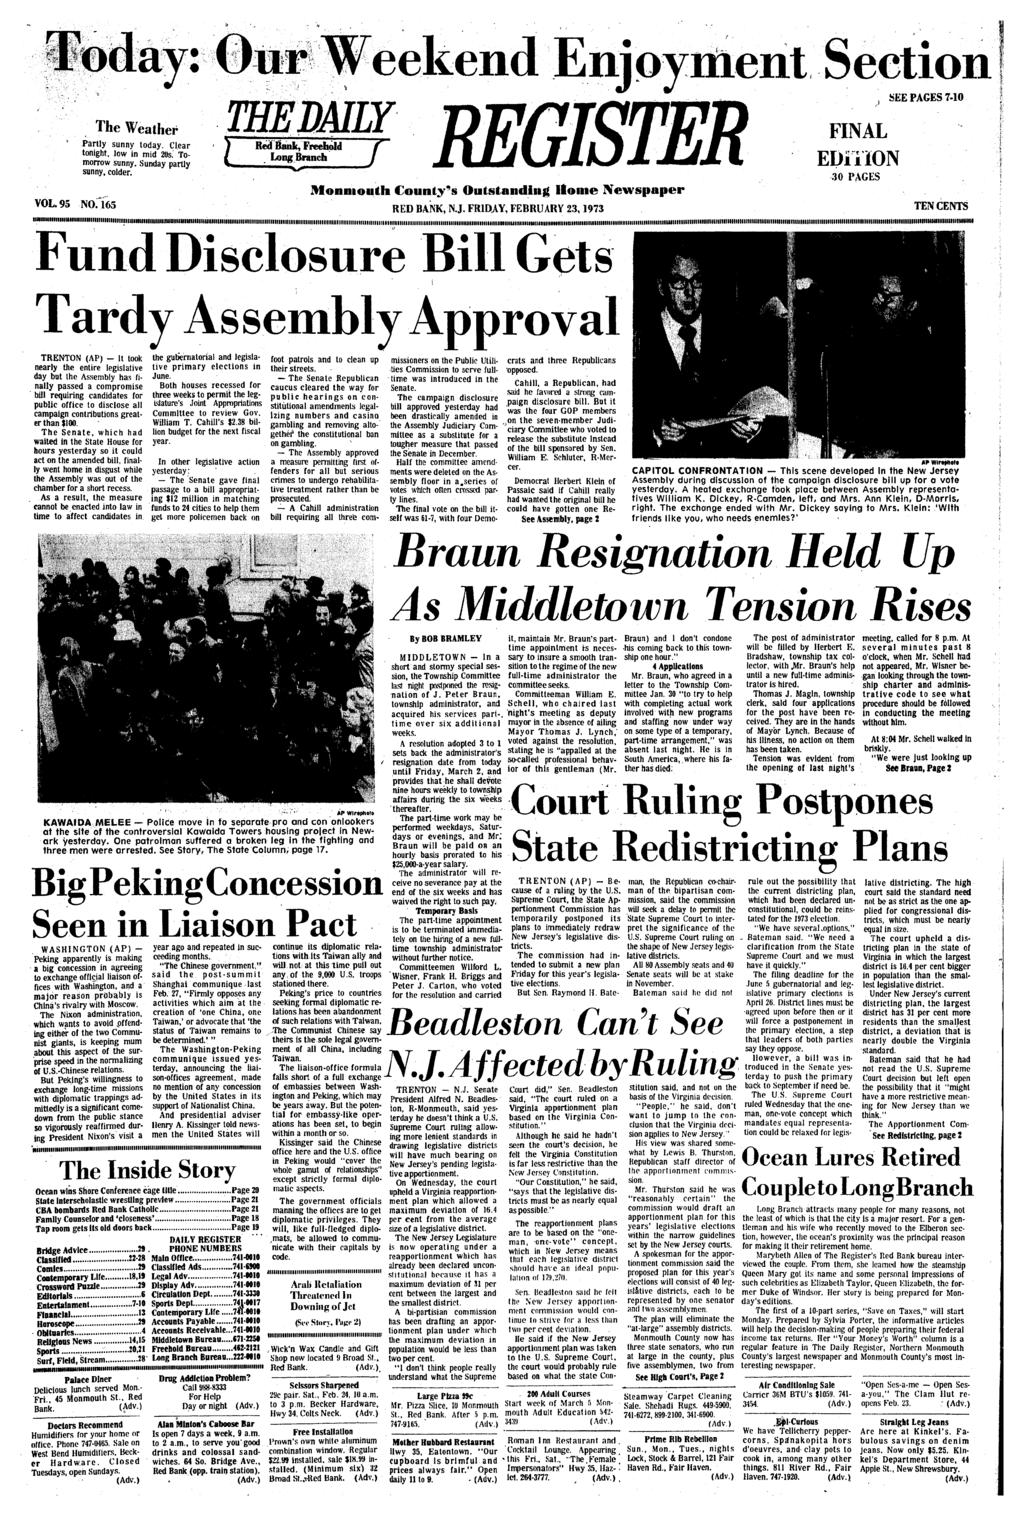 74fd7018f55 Monnioutli County s Outstanding Home Newspaper RED BANK